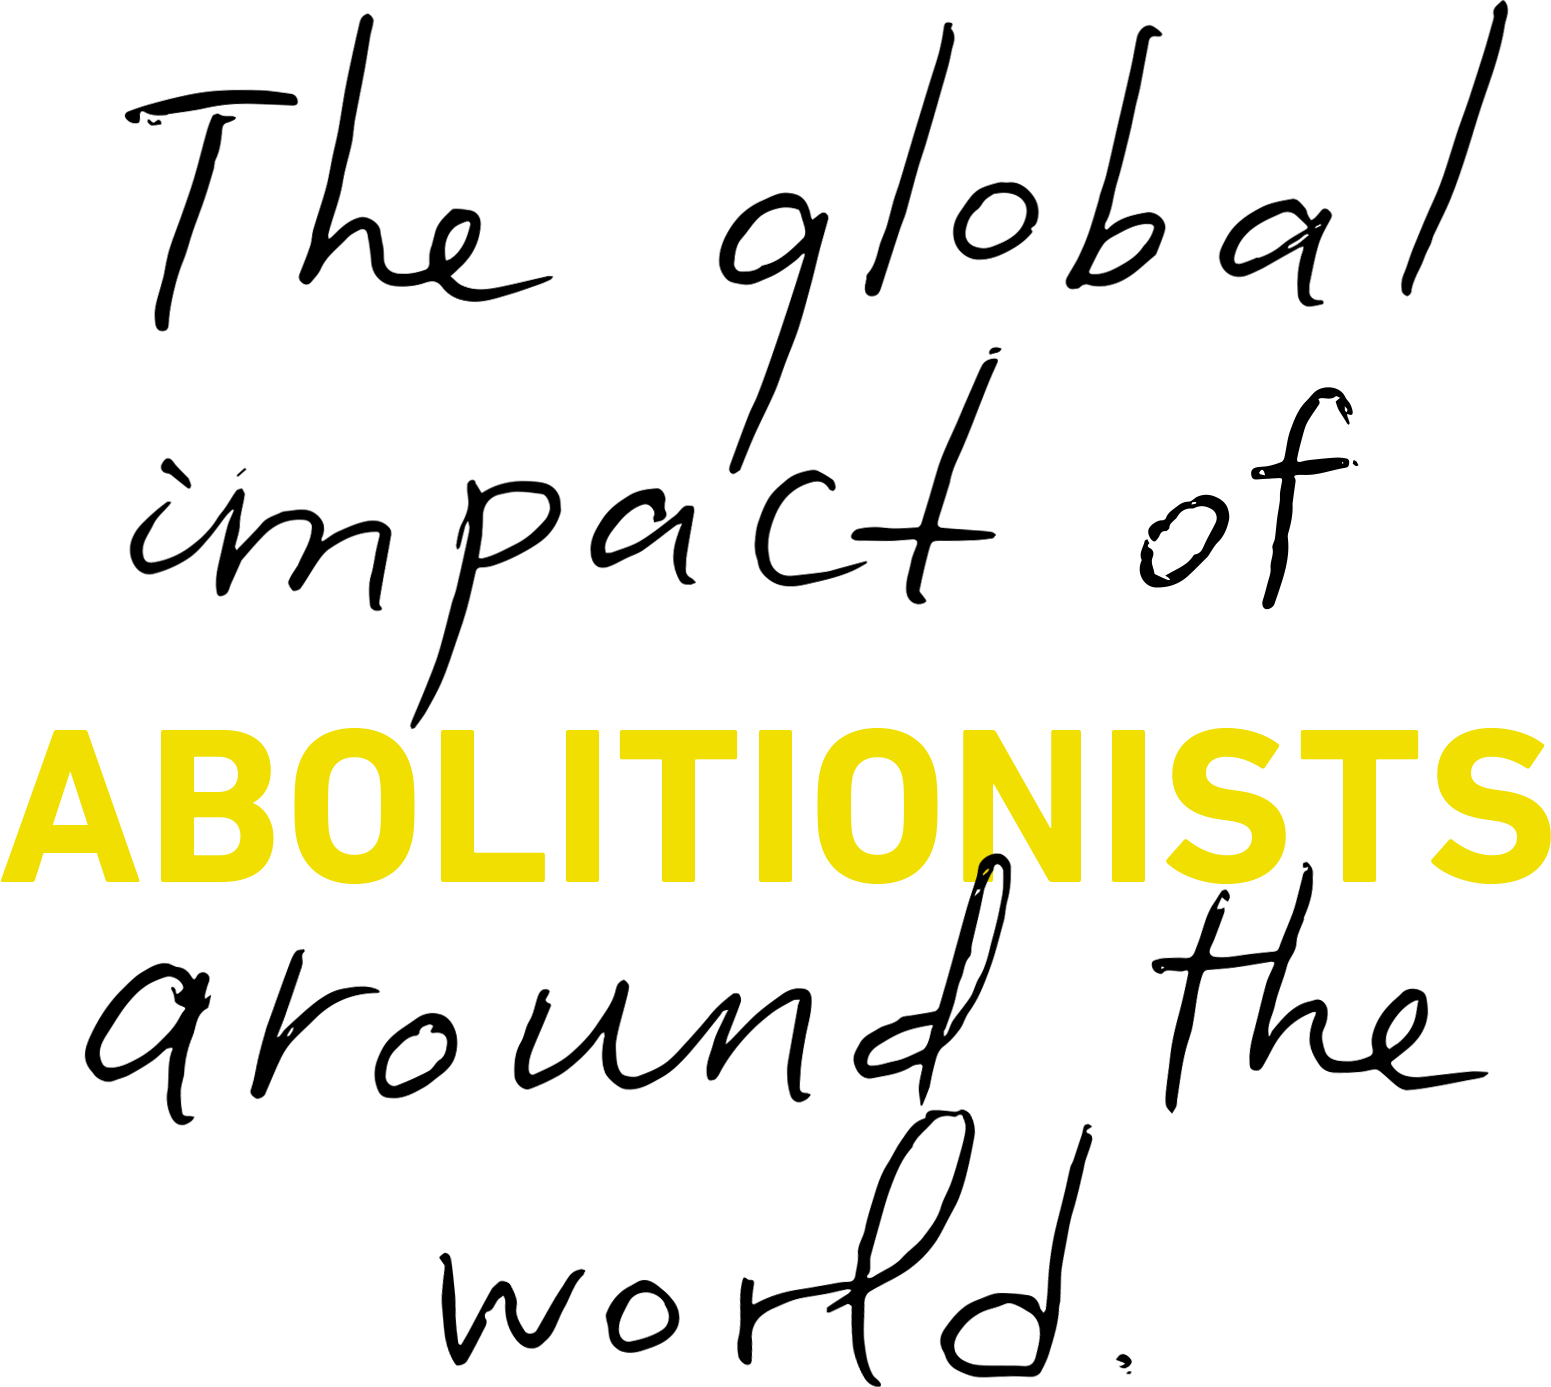 The global impact of abolitionists around the world.